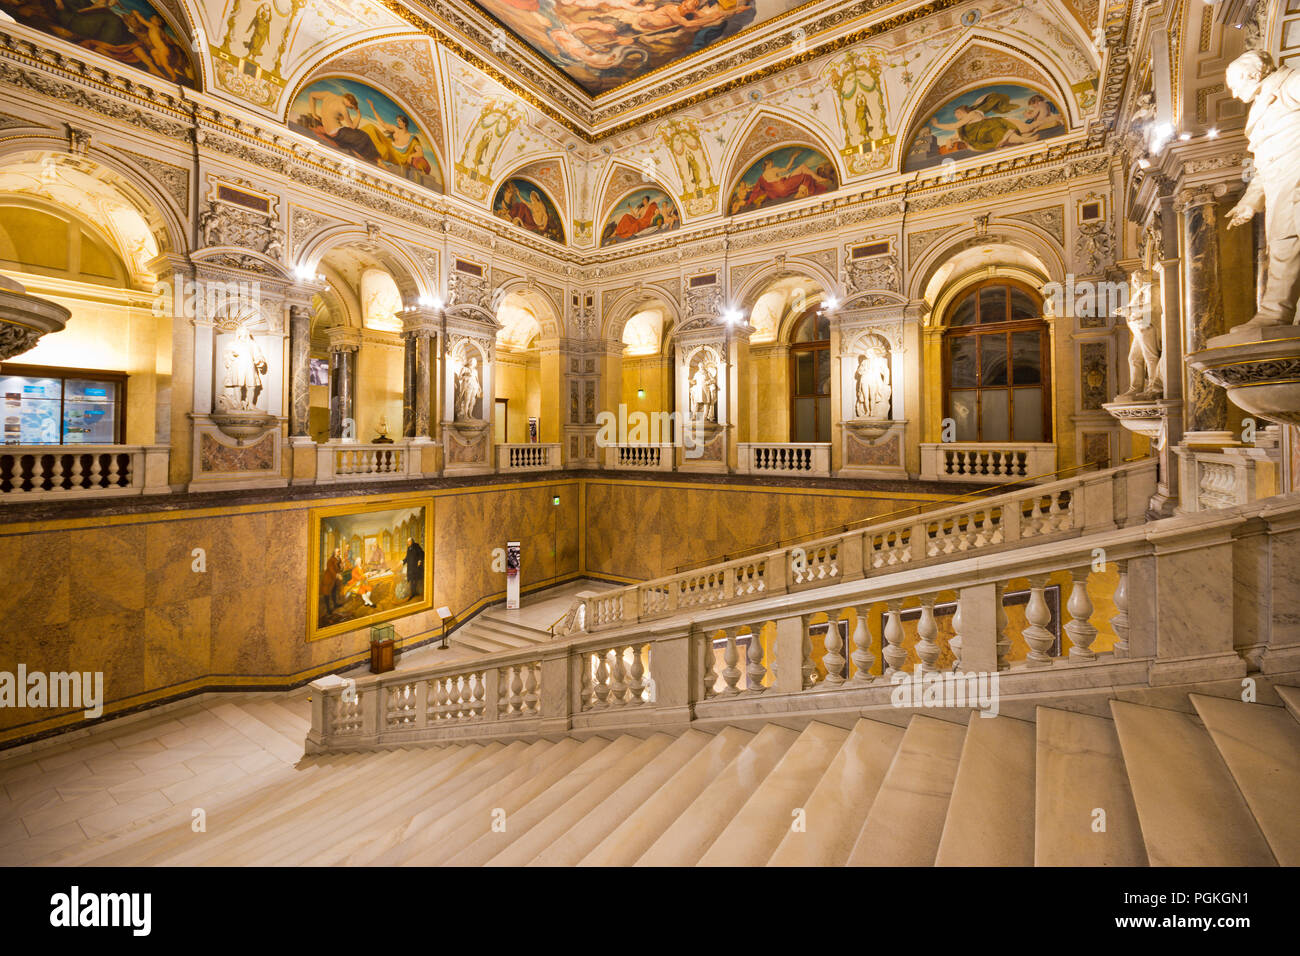 Sumptuous staircase with statues and round arches in imposing interior of famous Naturhistorisches Museum (natural history museum) in Vienna old town. - Stock Image